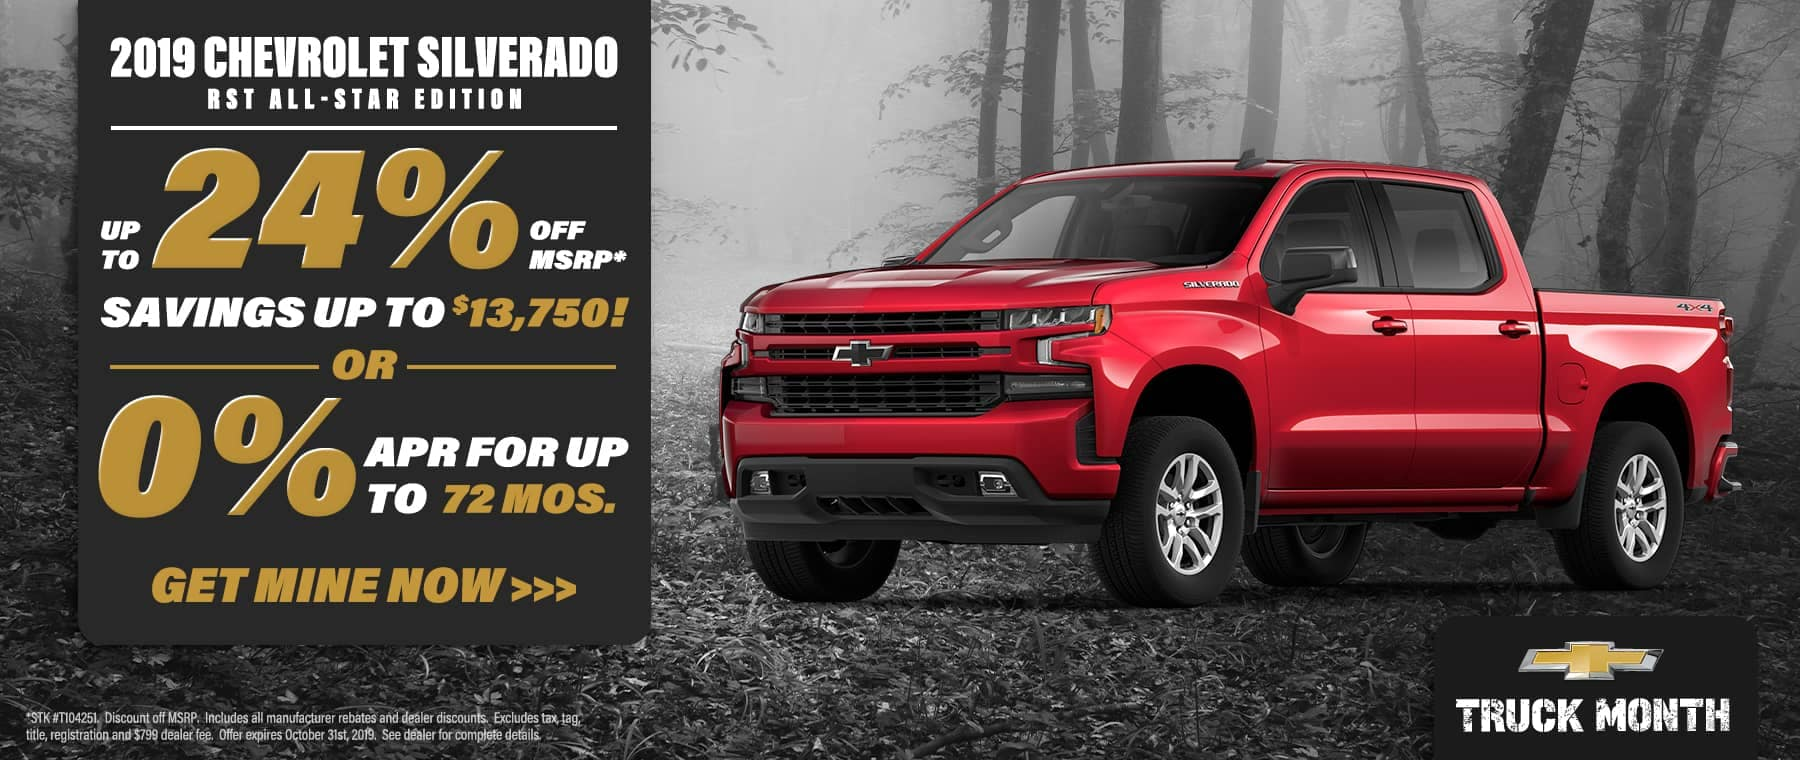 2019 Chevrolet Silverado RST All-Star Edition